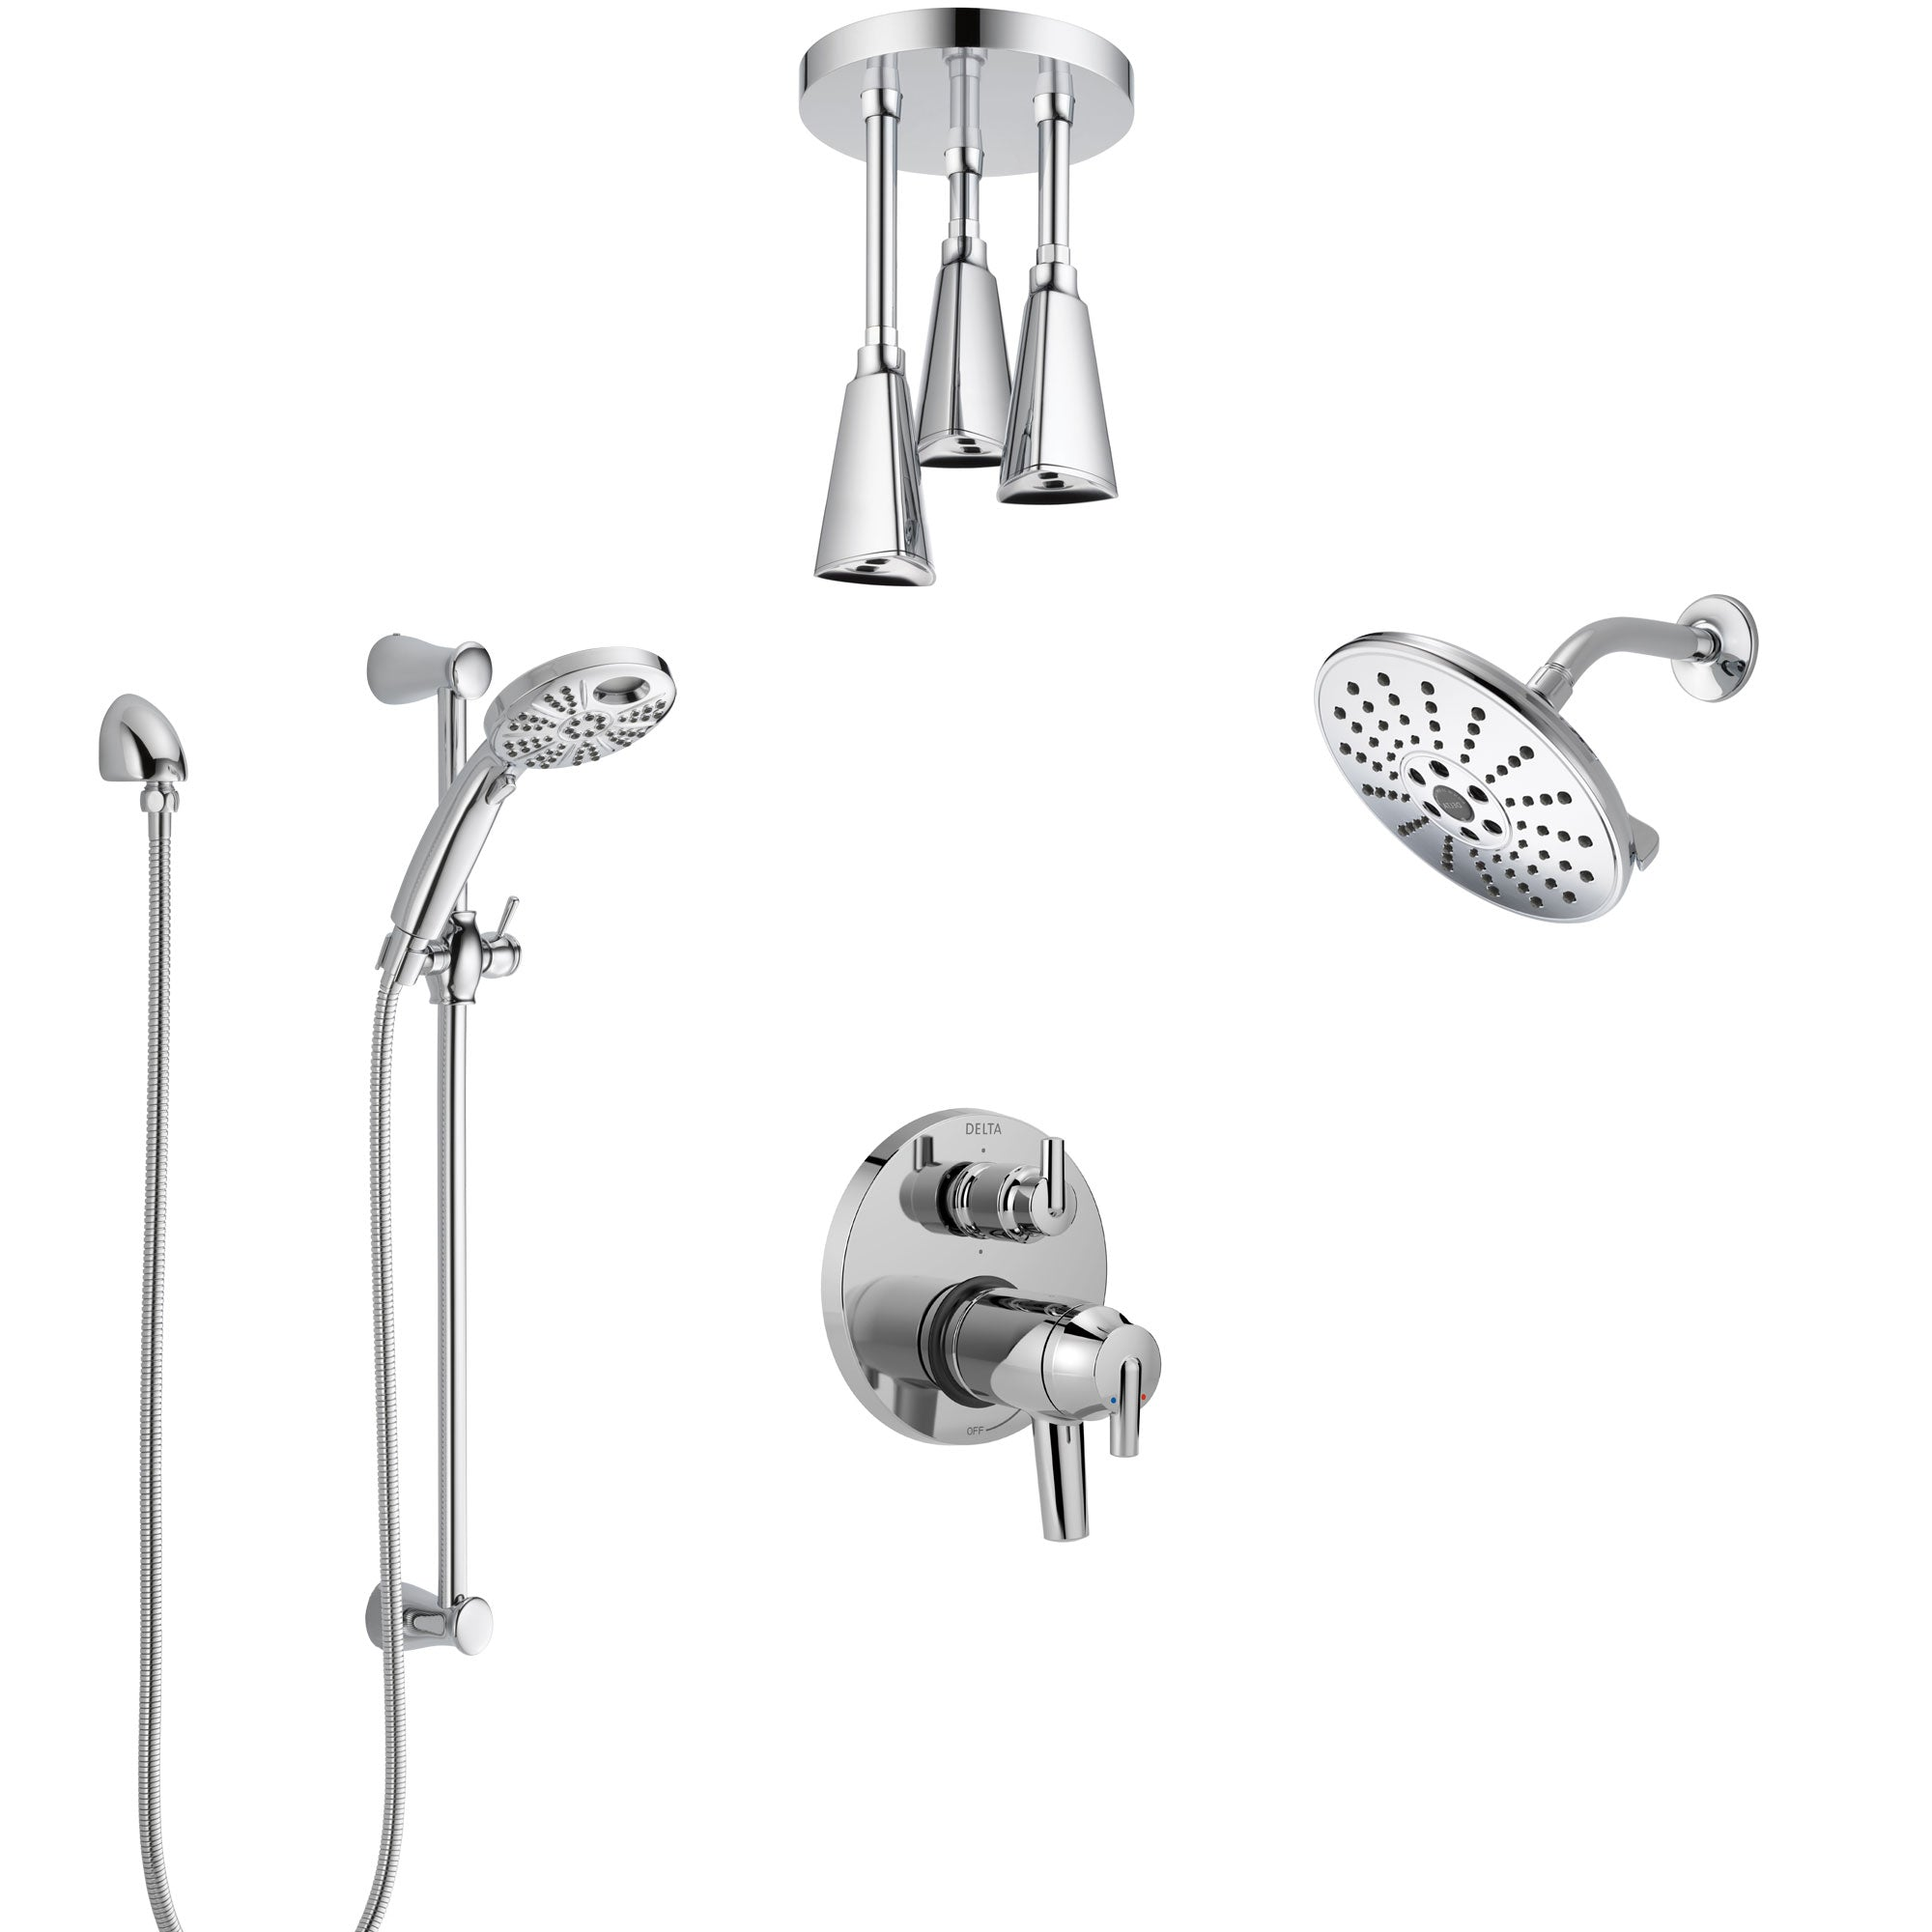 Delta Trinsic Chrome Dual Thermostatic Control Shower System, Integrated Diverter, Showerhead, Ceiling Showerhead, and Temp2O Hand Shower SS27T95912